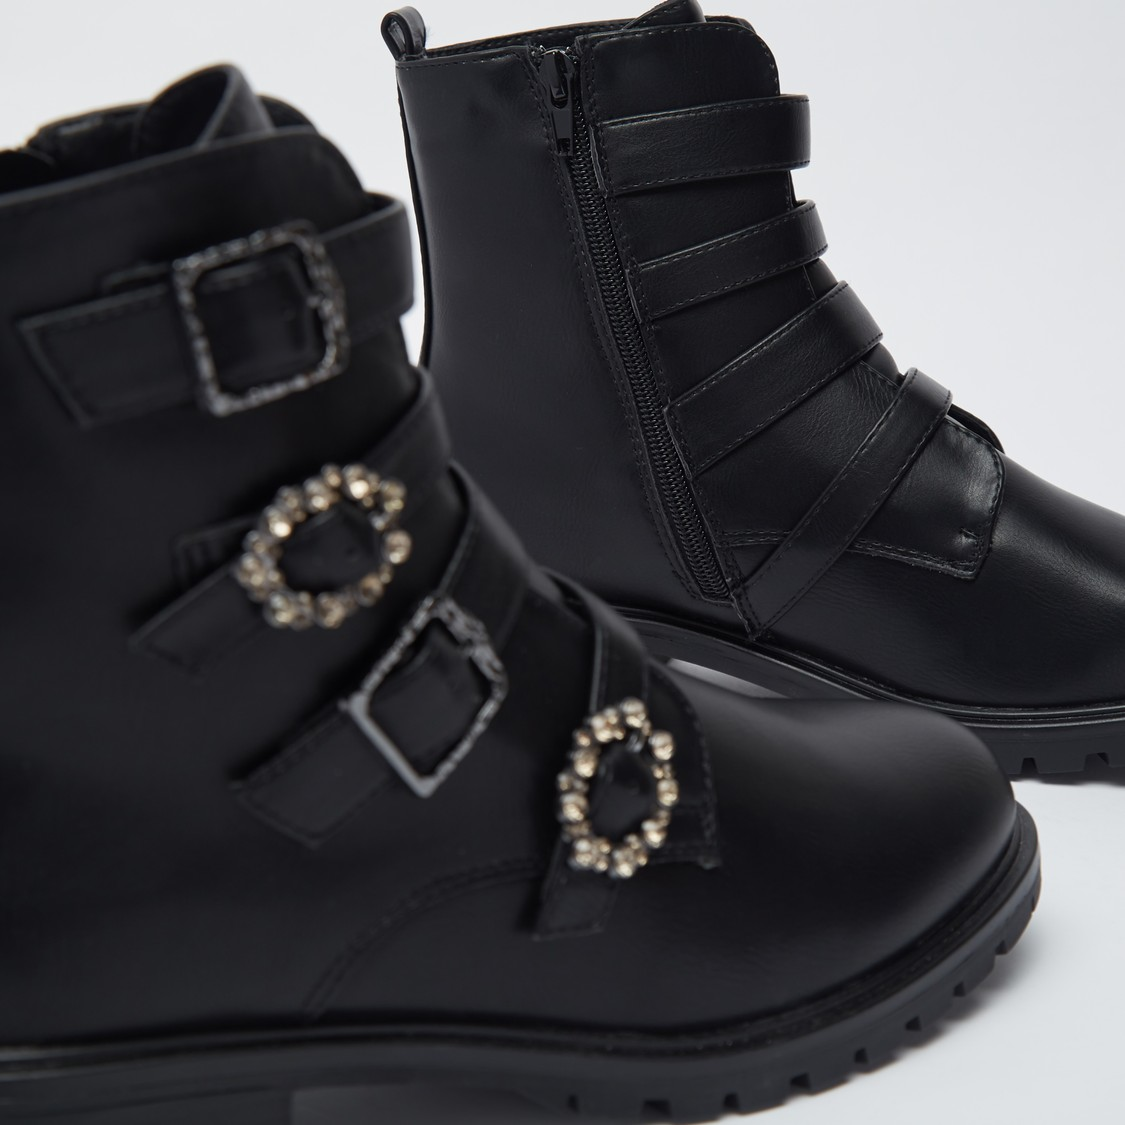 Stone Studded Ankle Boots with Zipper Closure